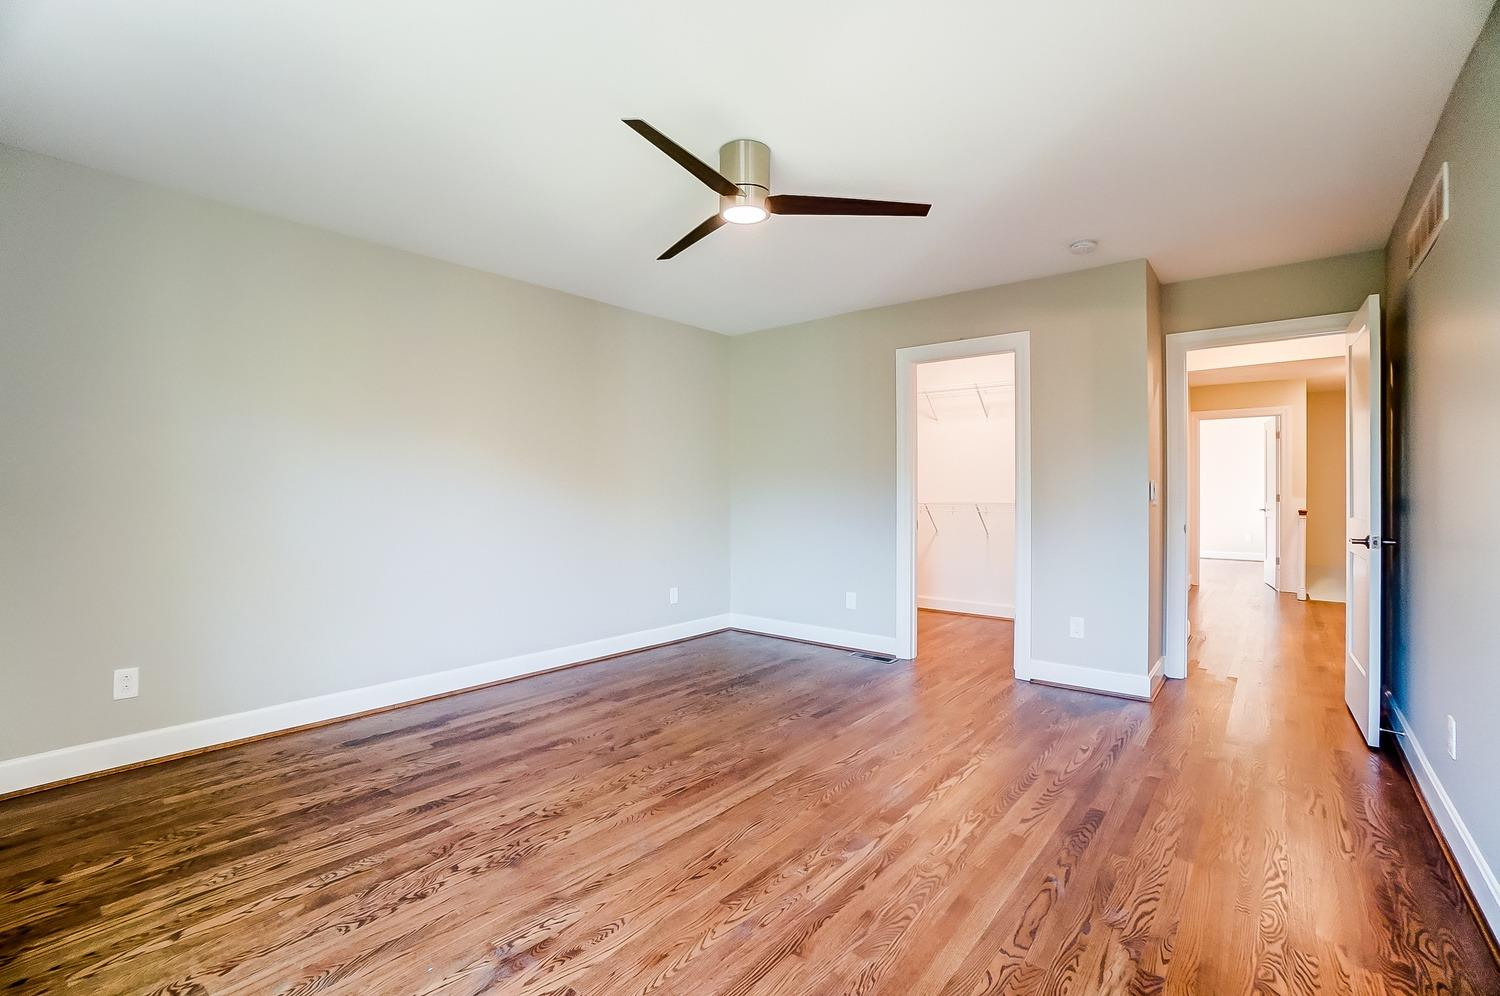 2nd floor, Owner's bedroom with generous walk-in closet, ceiling fan with remote. Gleaming hardwood floors.